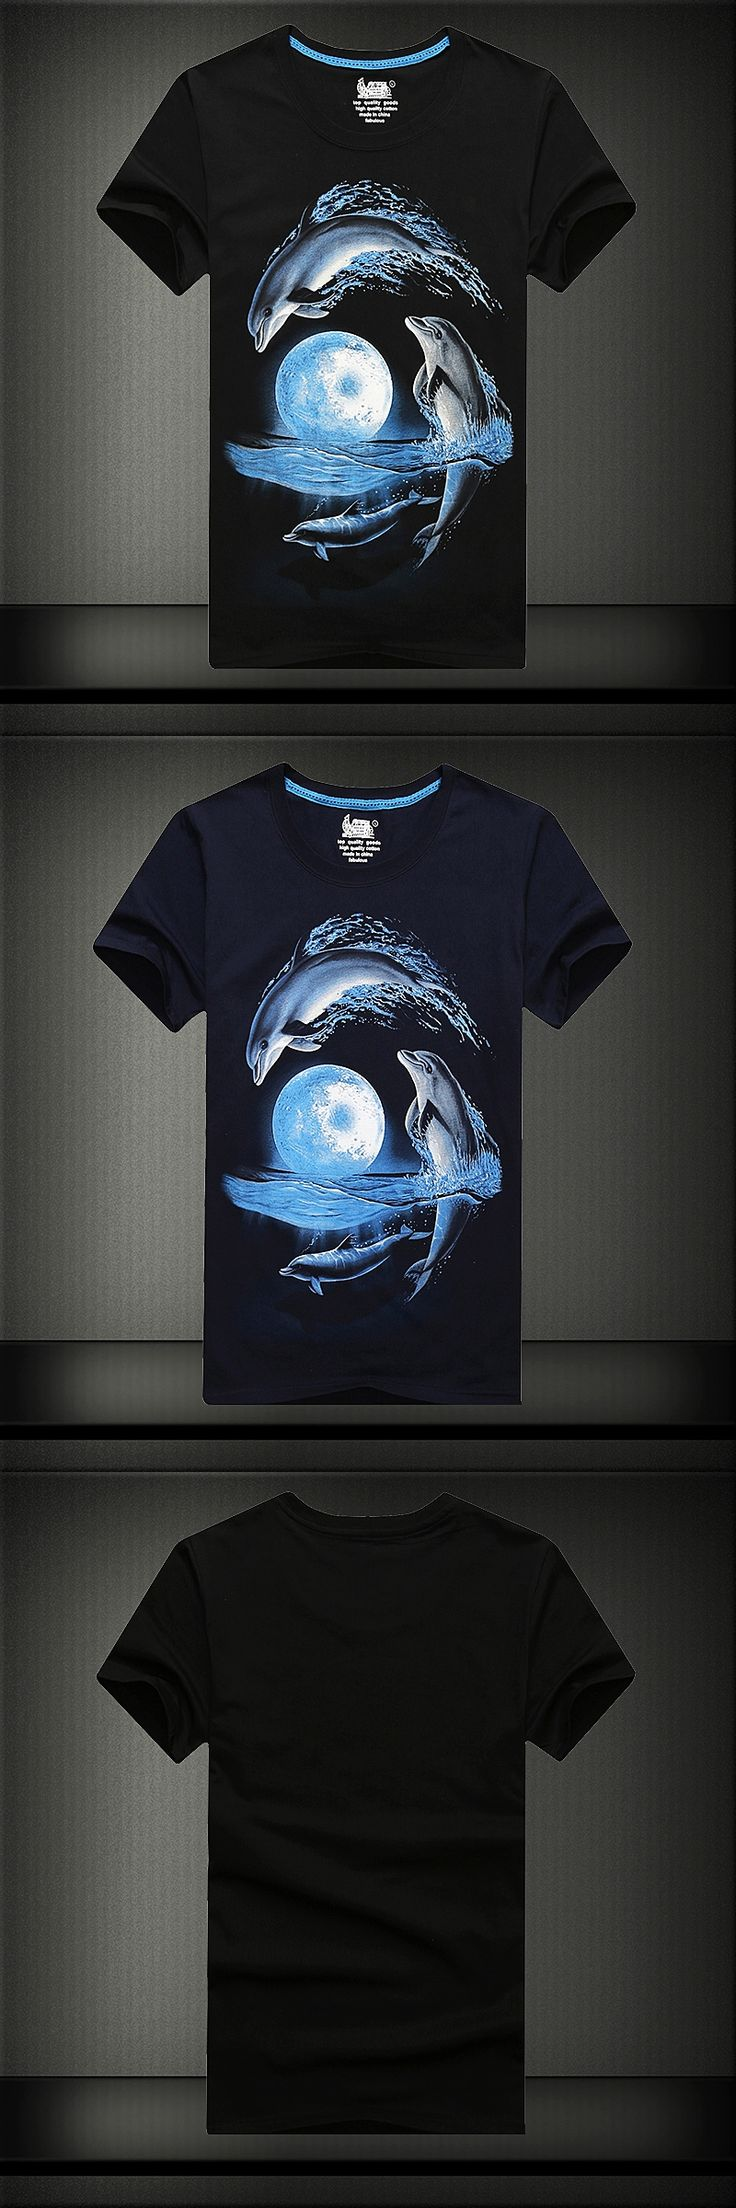 wholesale 2015 new fashion men 3d t shirt summer fighting plane printing summer 3D t-shirts M-4XL free shipping